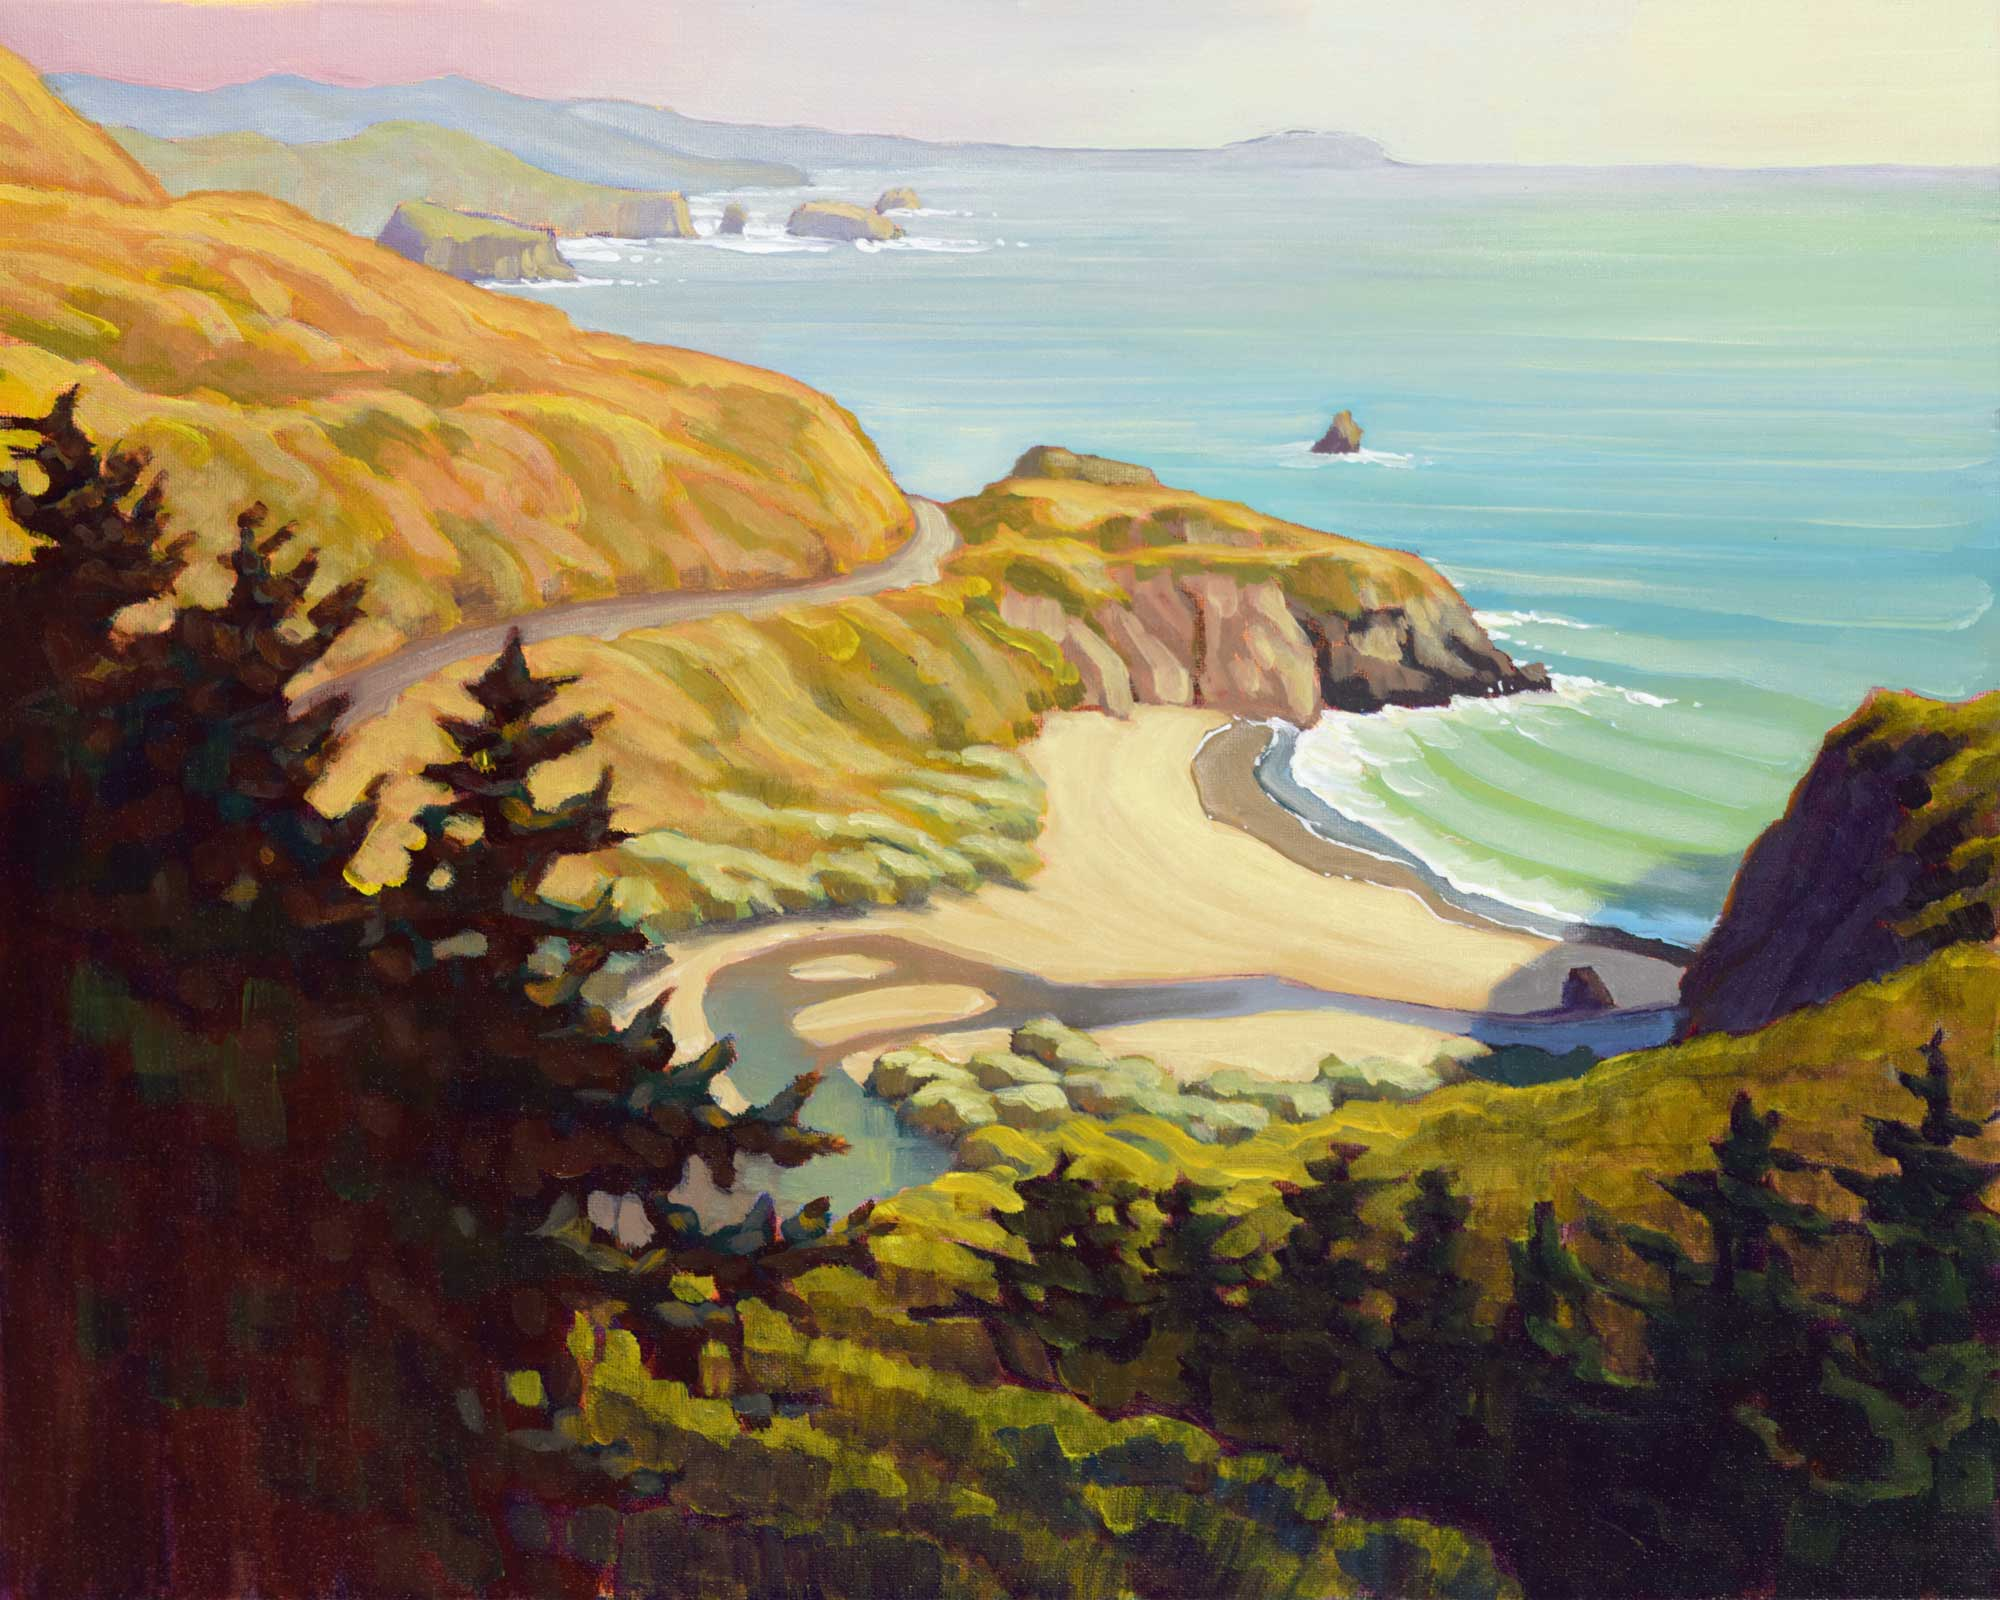 A Plein air painting of Russian Gulch on the Sonoma coast of Northern California